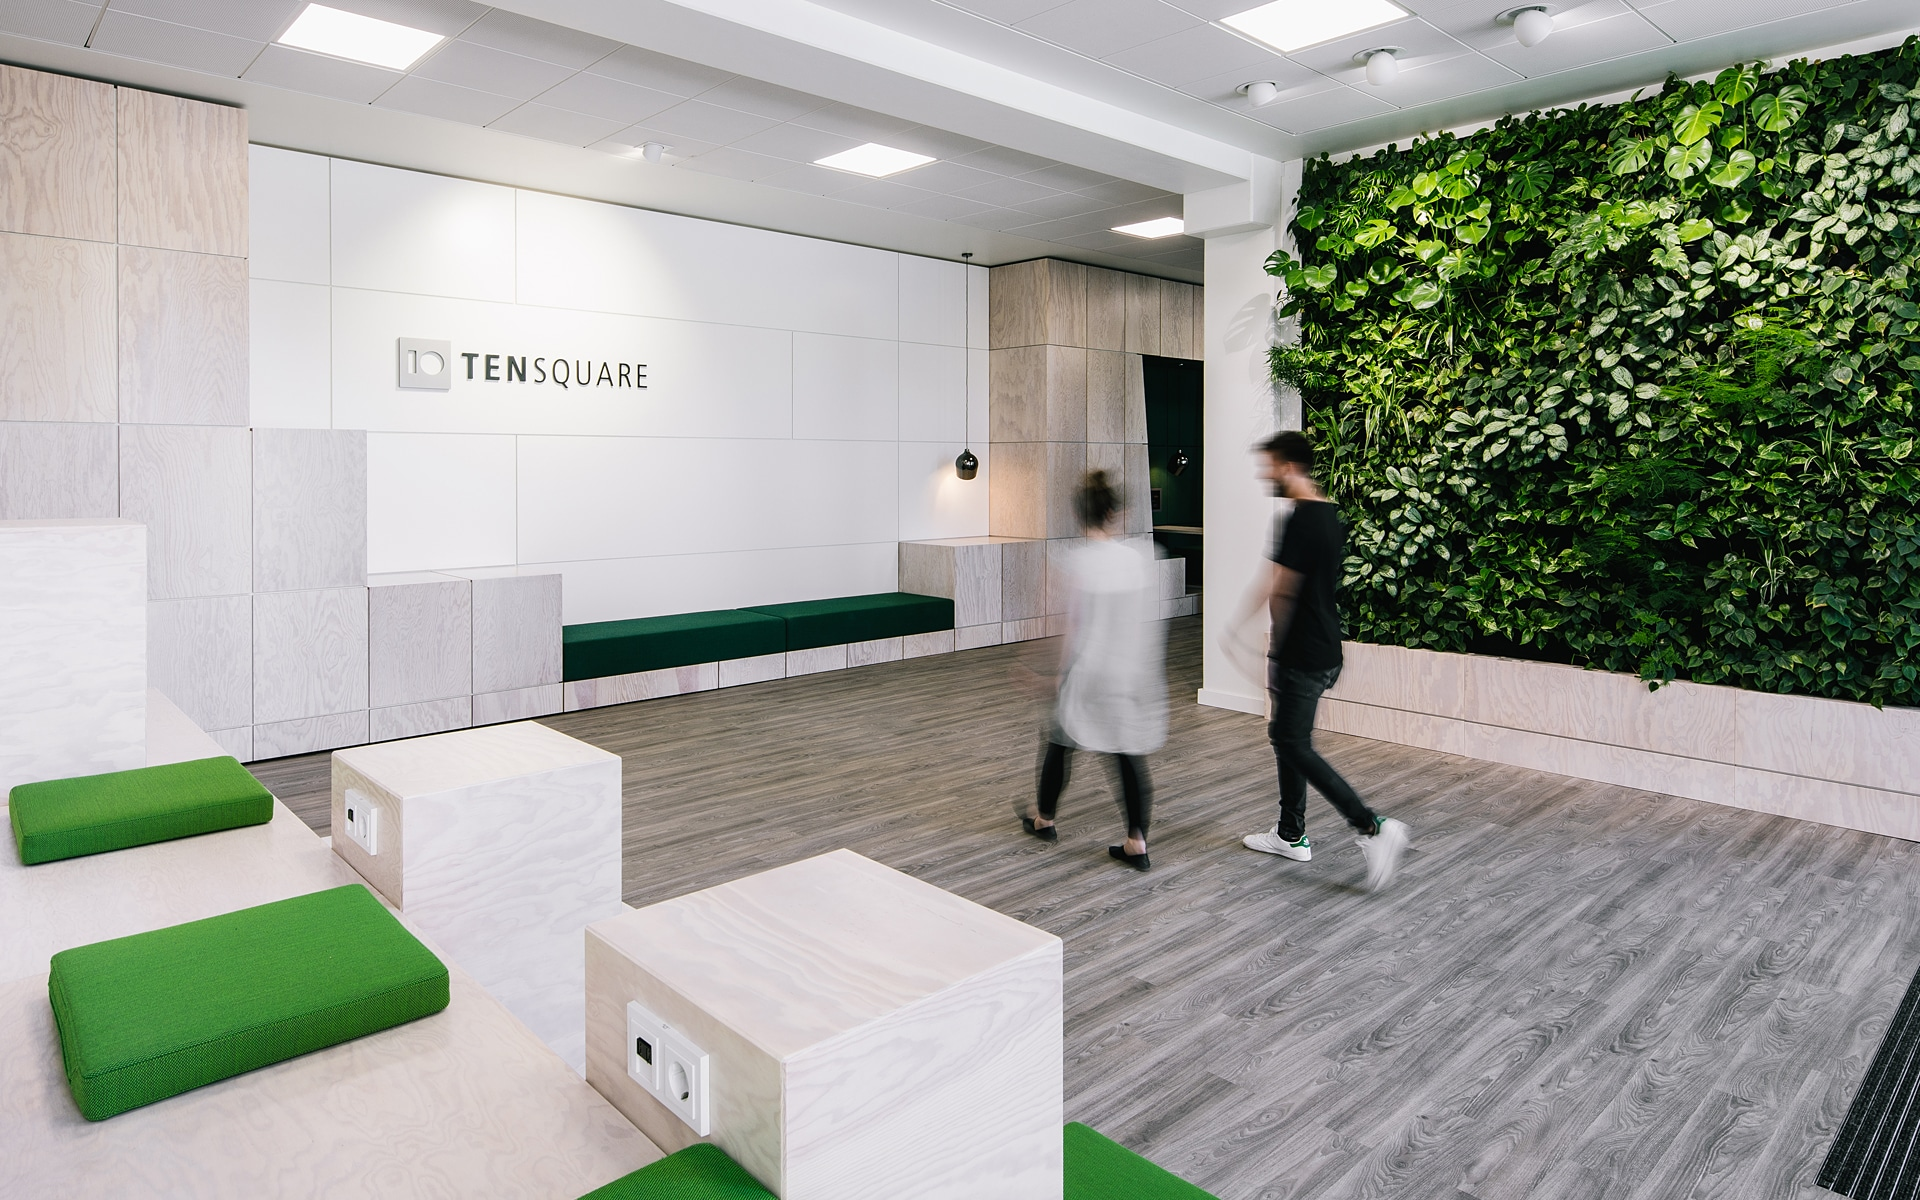 Office Tensquare Schwitzke Project Gelsenkirchen